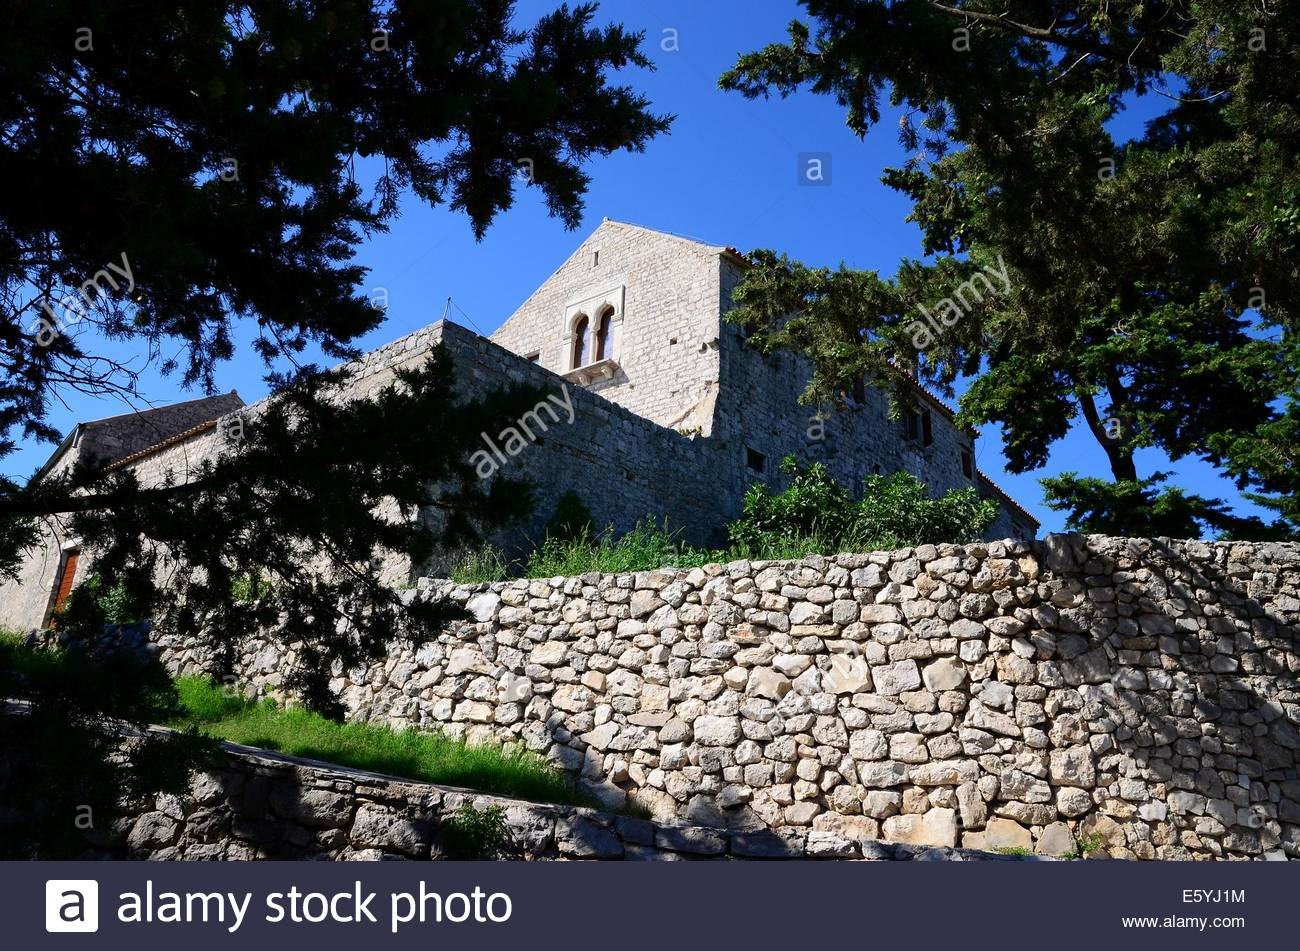 St. Cosmas and Damian Monastery on the hill Cokovac, island of Pasman,Croatia - Stock Image